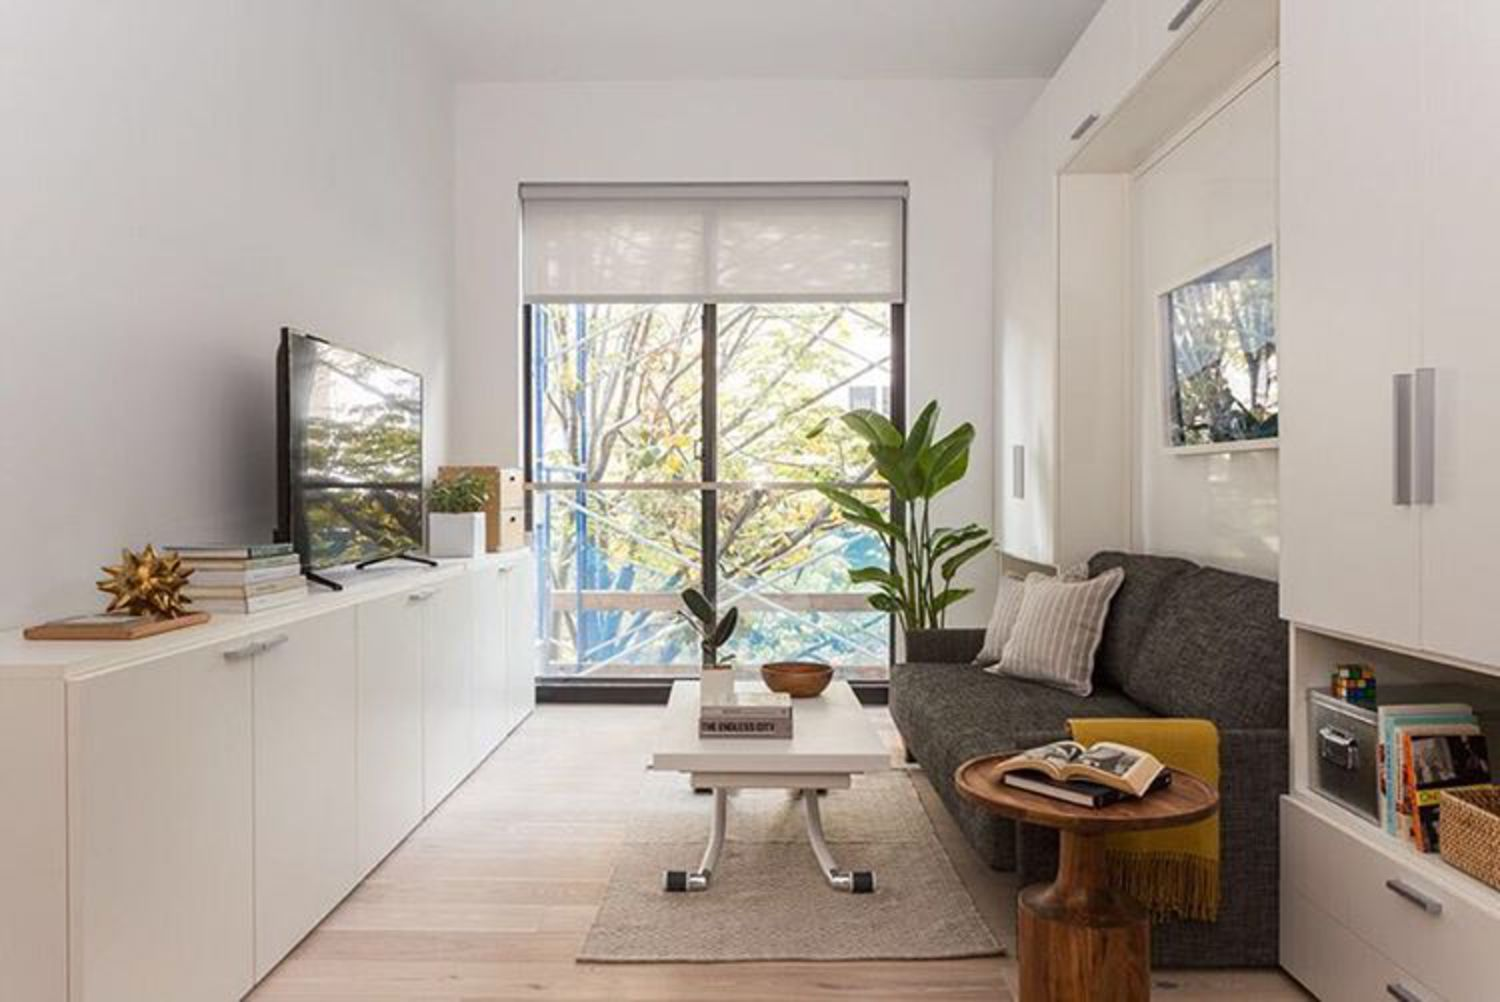 #microapartmentmonday in our Carmel Place apartments in Kips Bay. Tag us in your own #microapartment to get featured!  #ollieliving #sunincluded #carmelplace #newyork